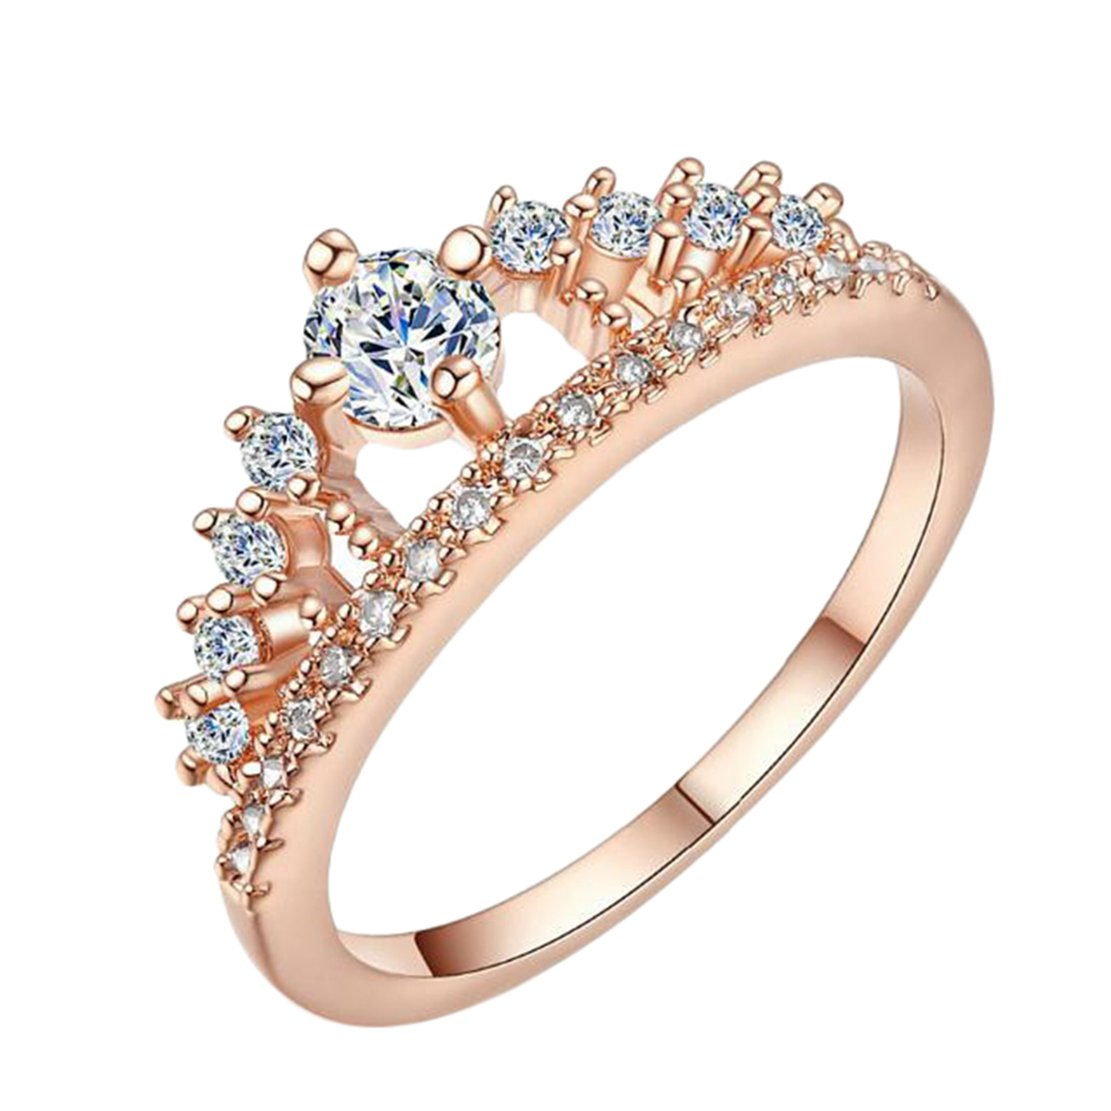 Freedi Women Crystal Diamond Engagement Wedding Ring Fashion Jewelry Gift for Girls Size 6 Gold